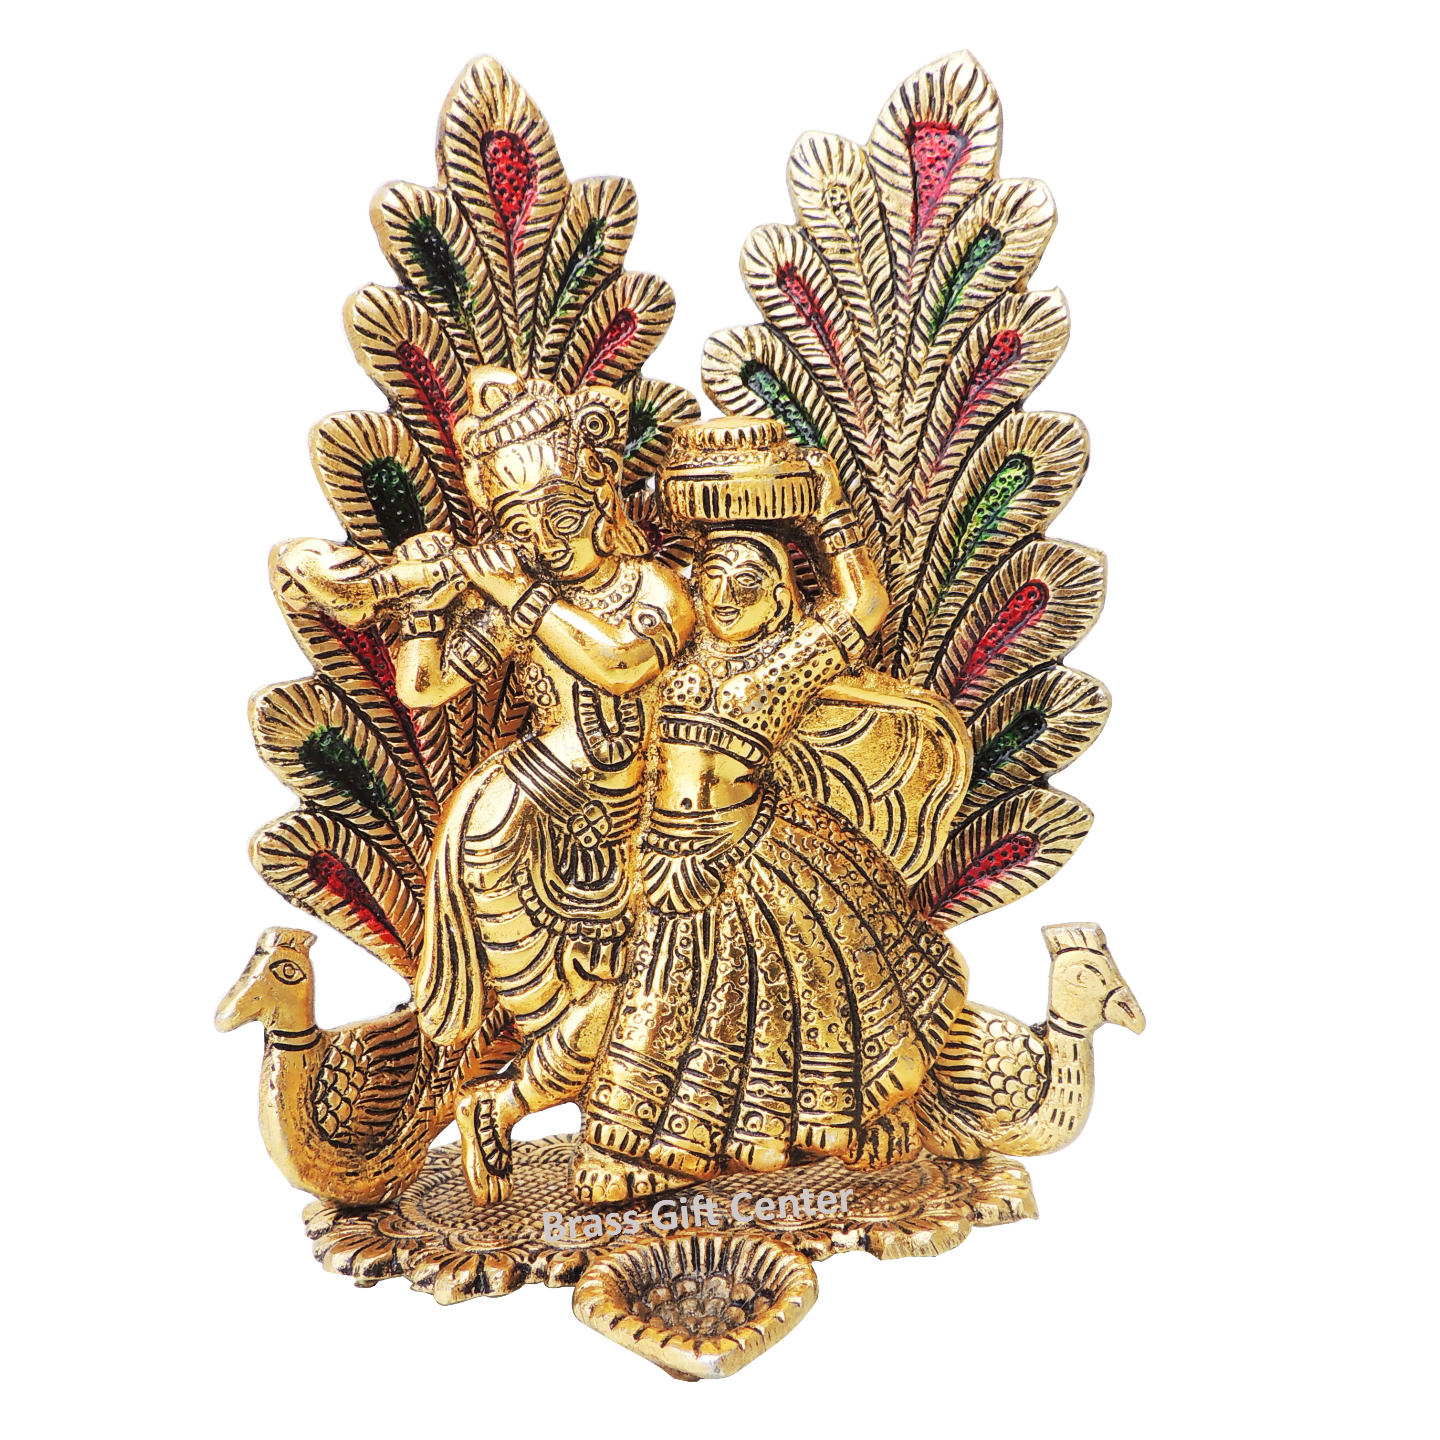 Showiece Radha Krishna Sitting On Peacock In Gooden Finish - 8 Inch AS373 G